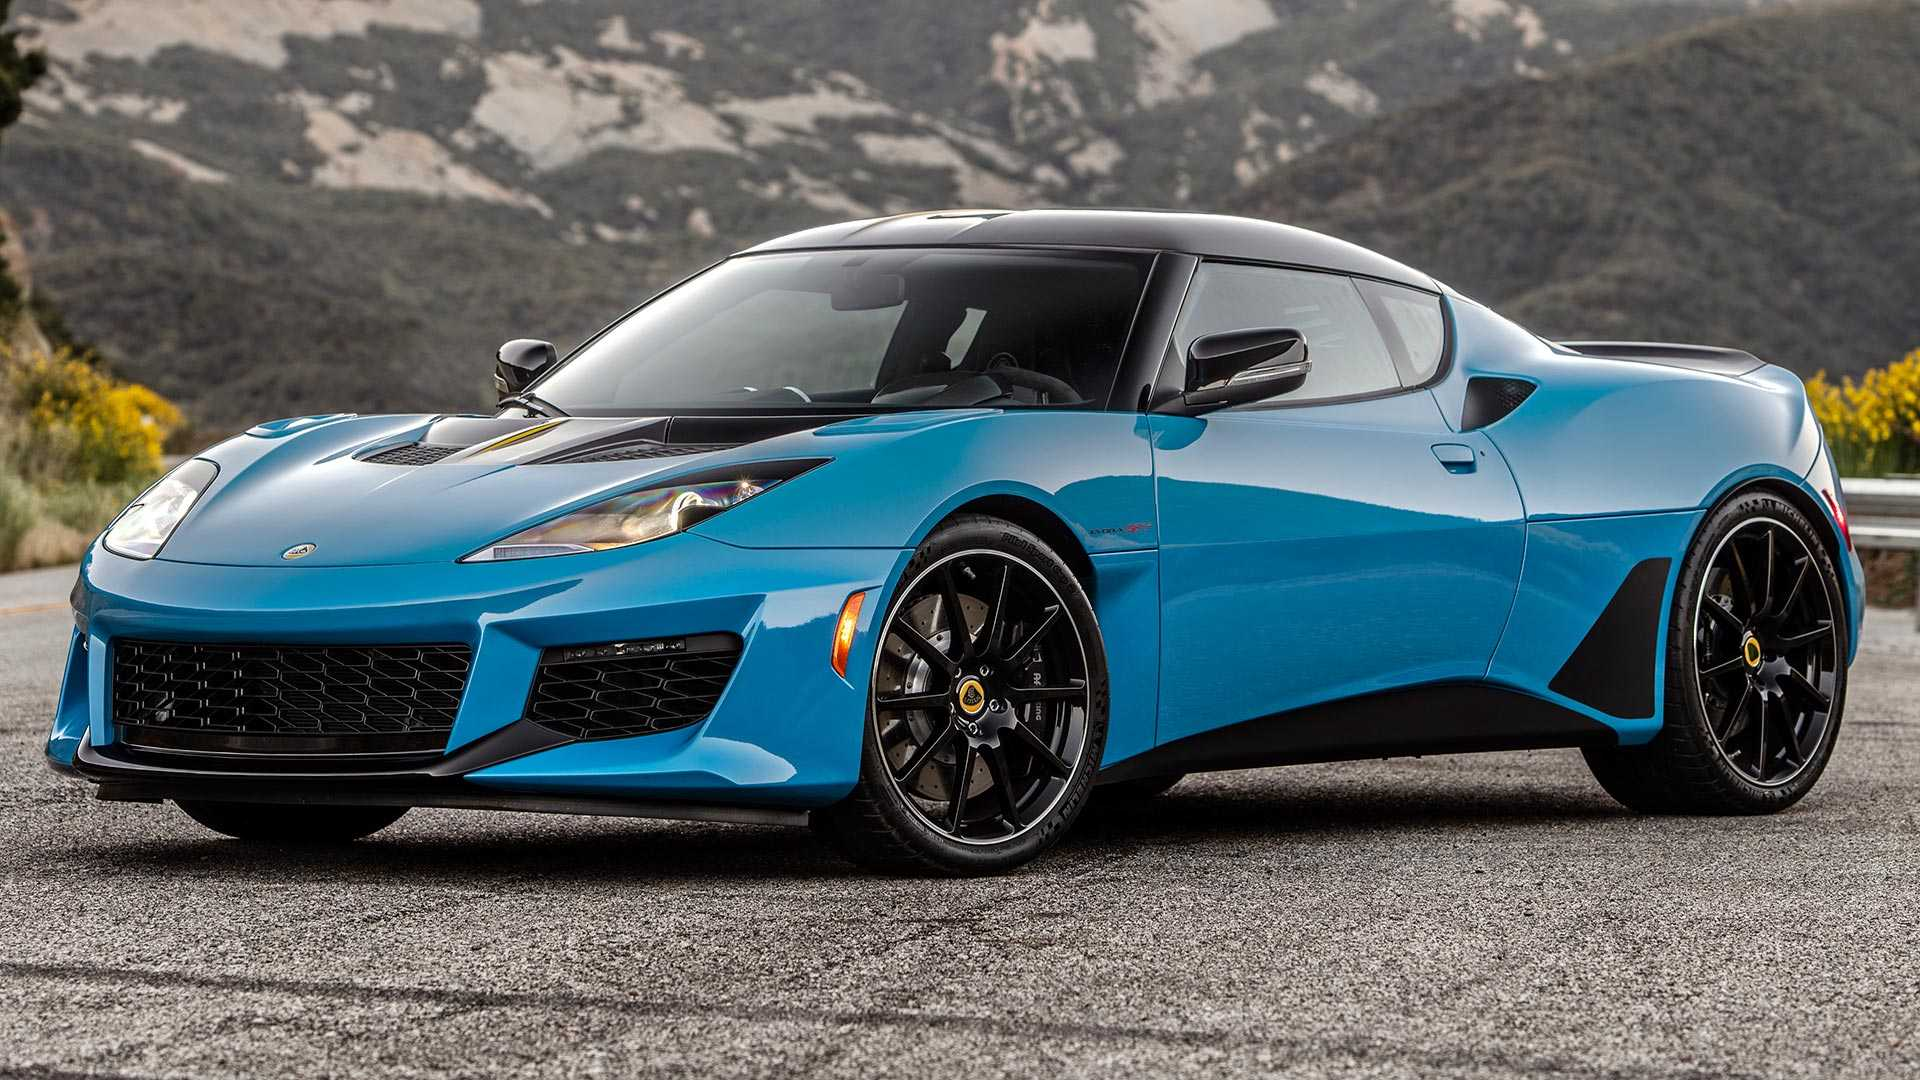 2020 Lotus Evora New Concept